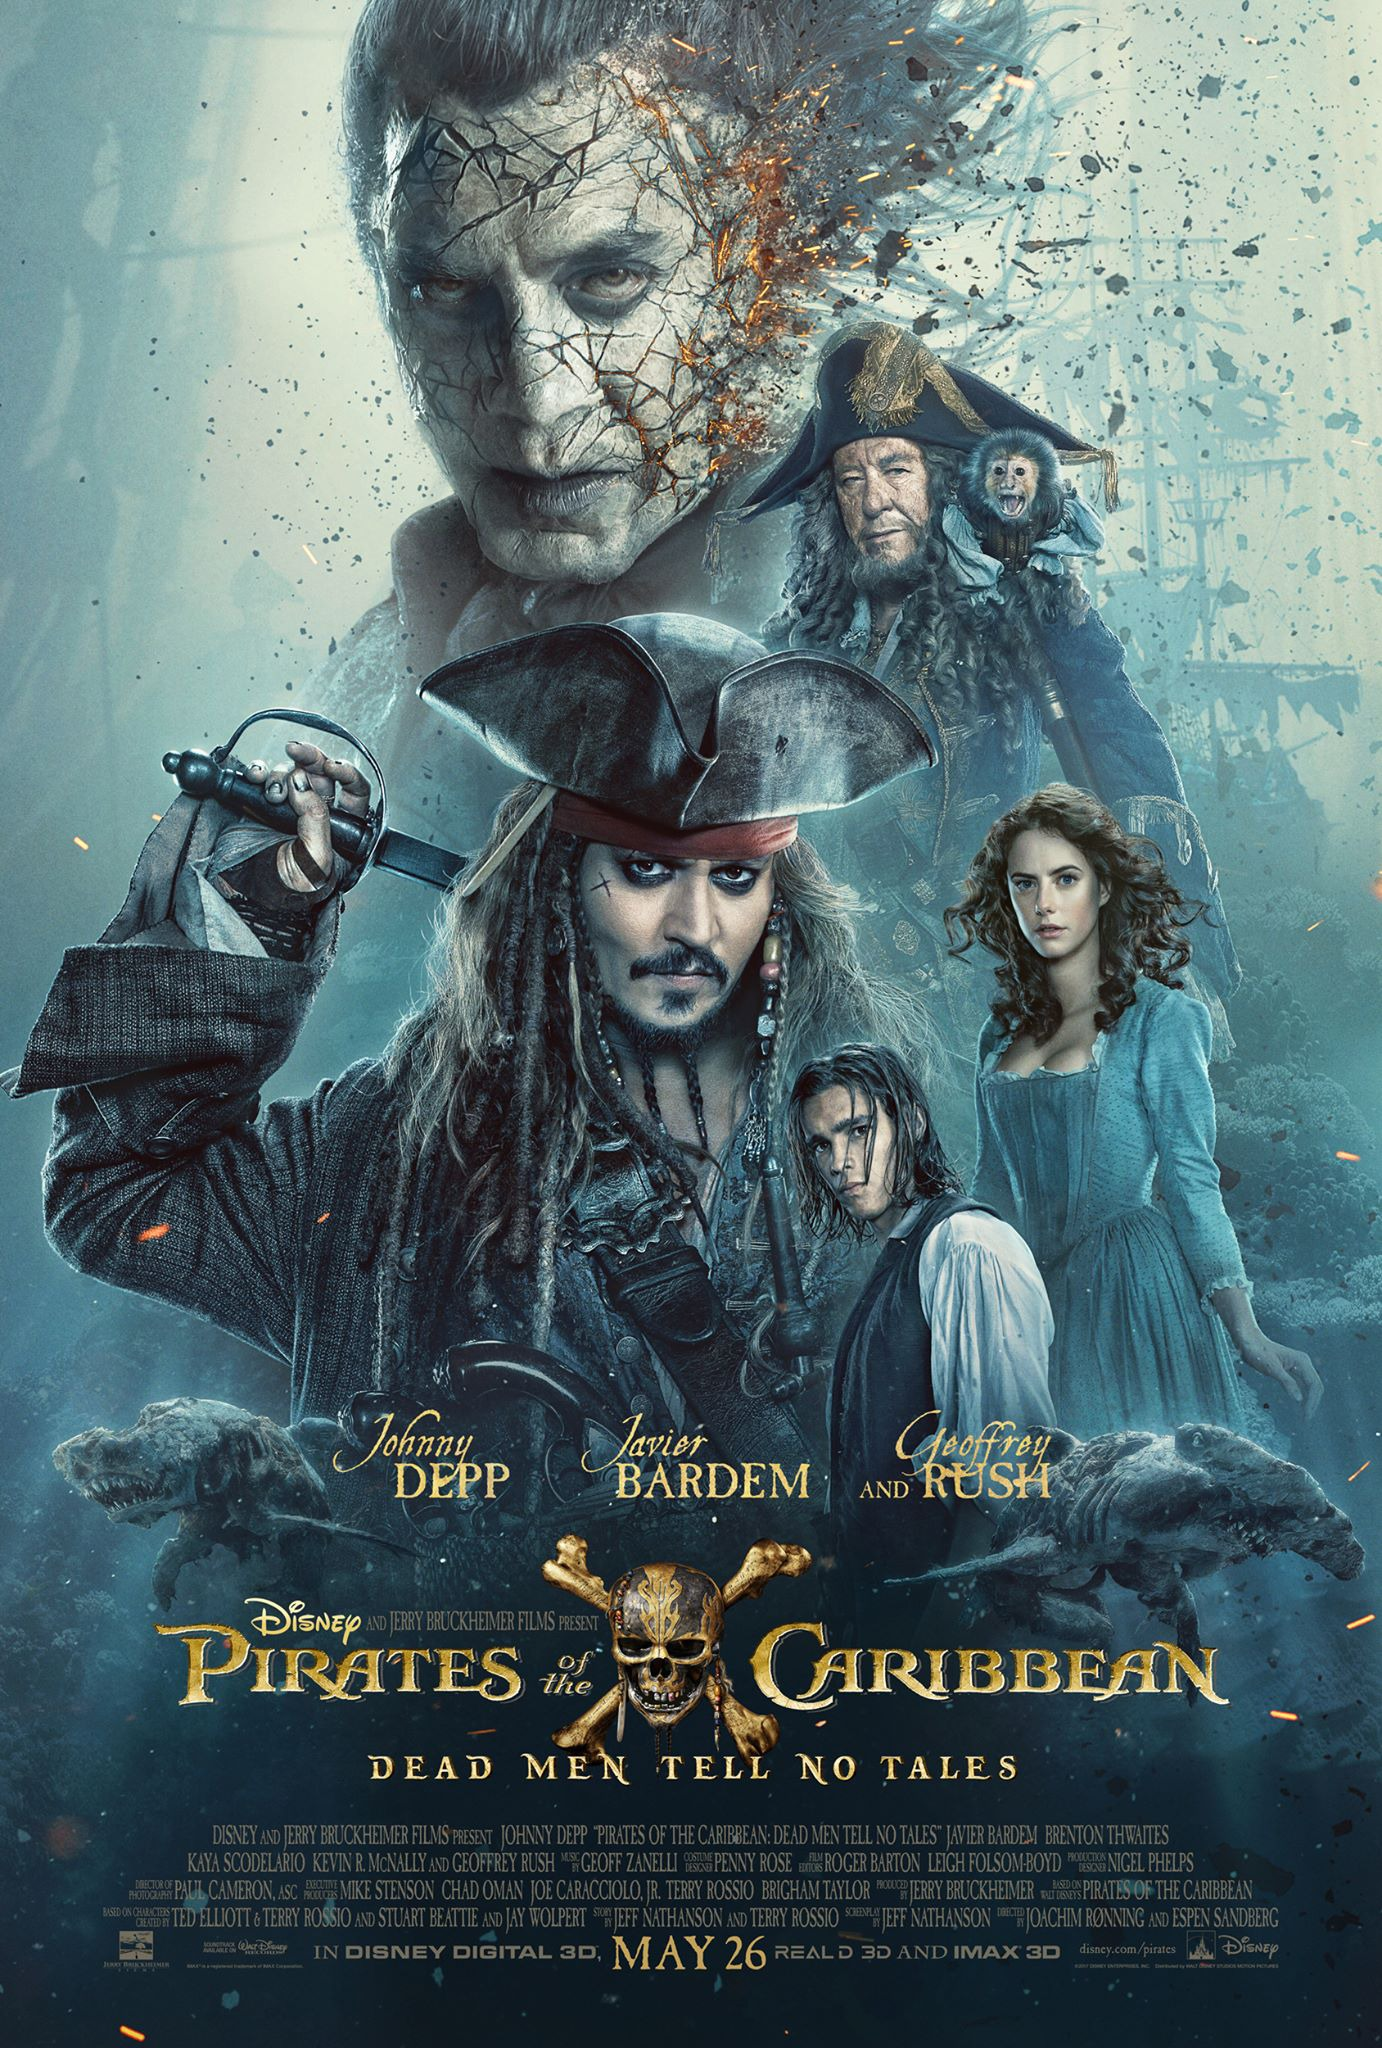 358-pirates_of_the_caribbean_dead_men_tell_no_tales_ver3_xxlg.jpg